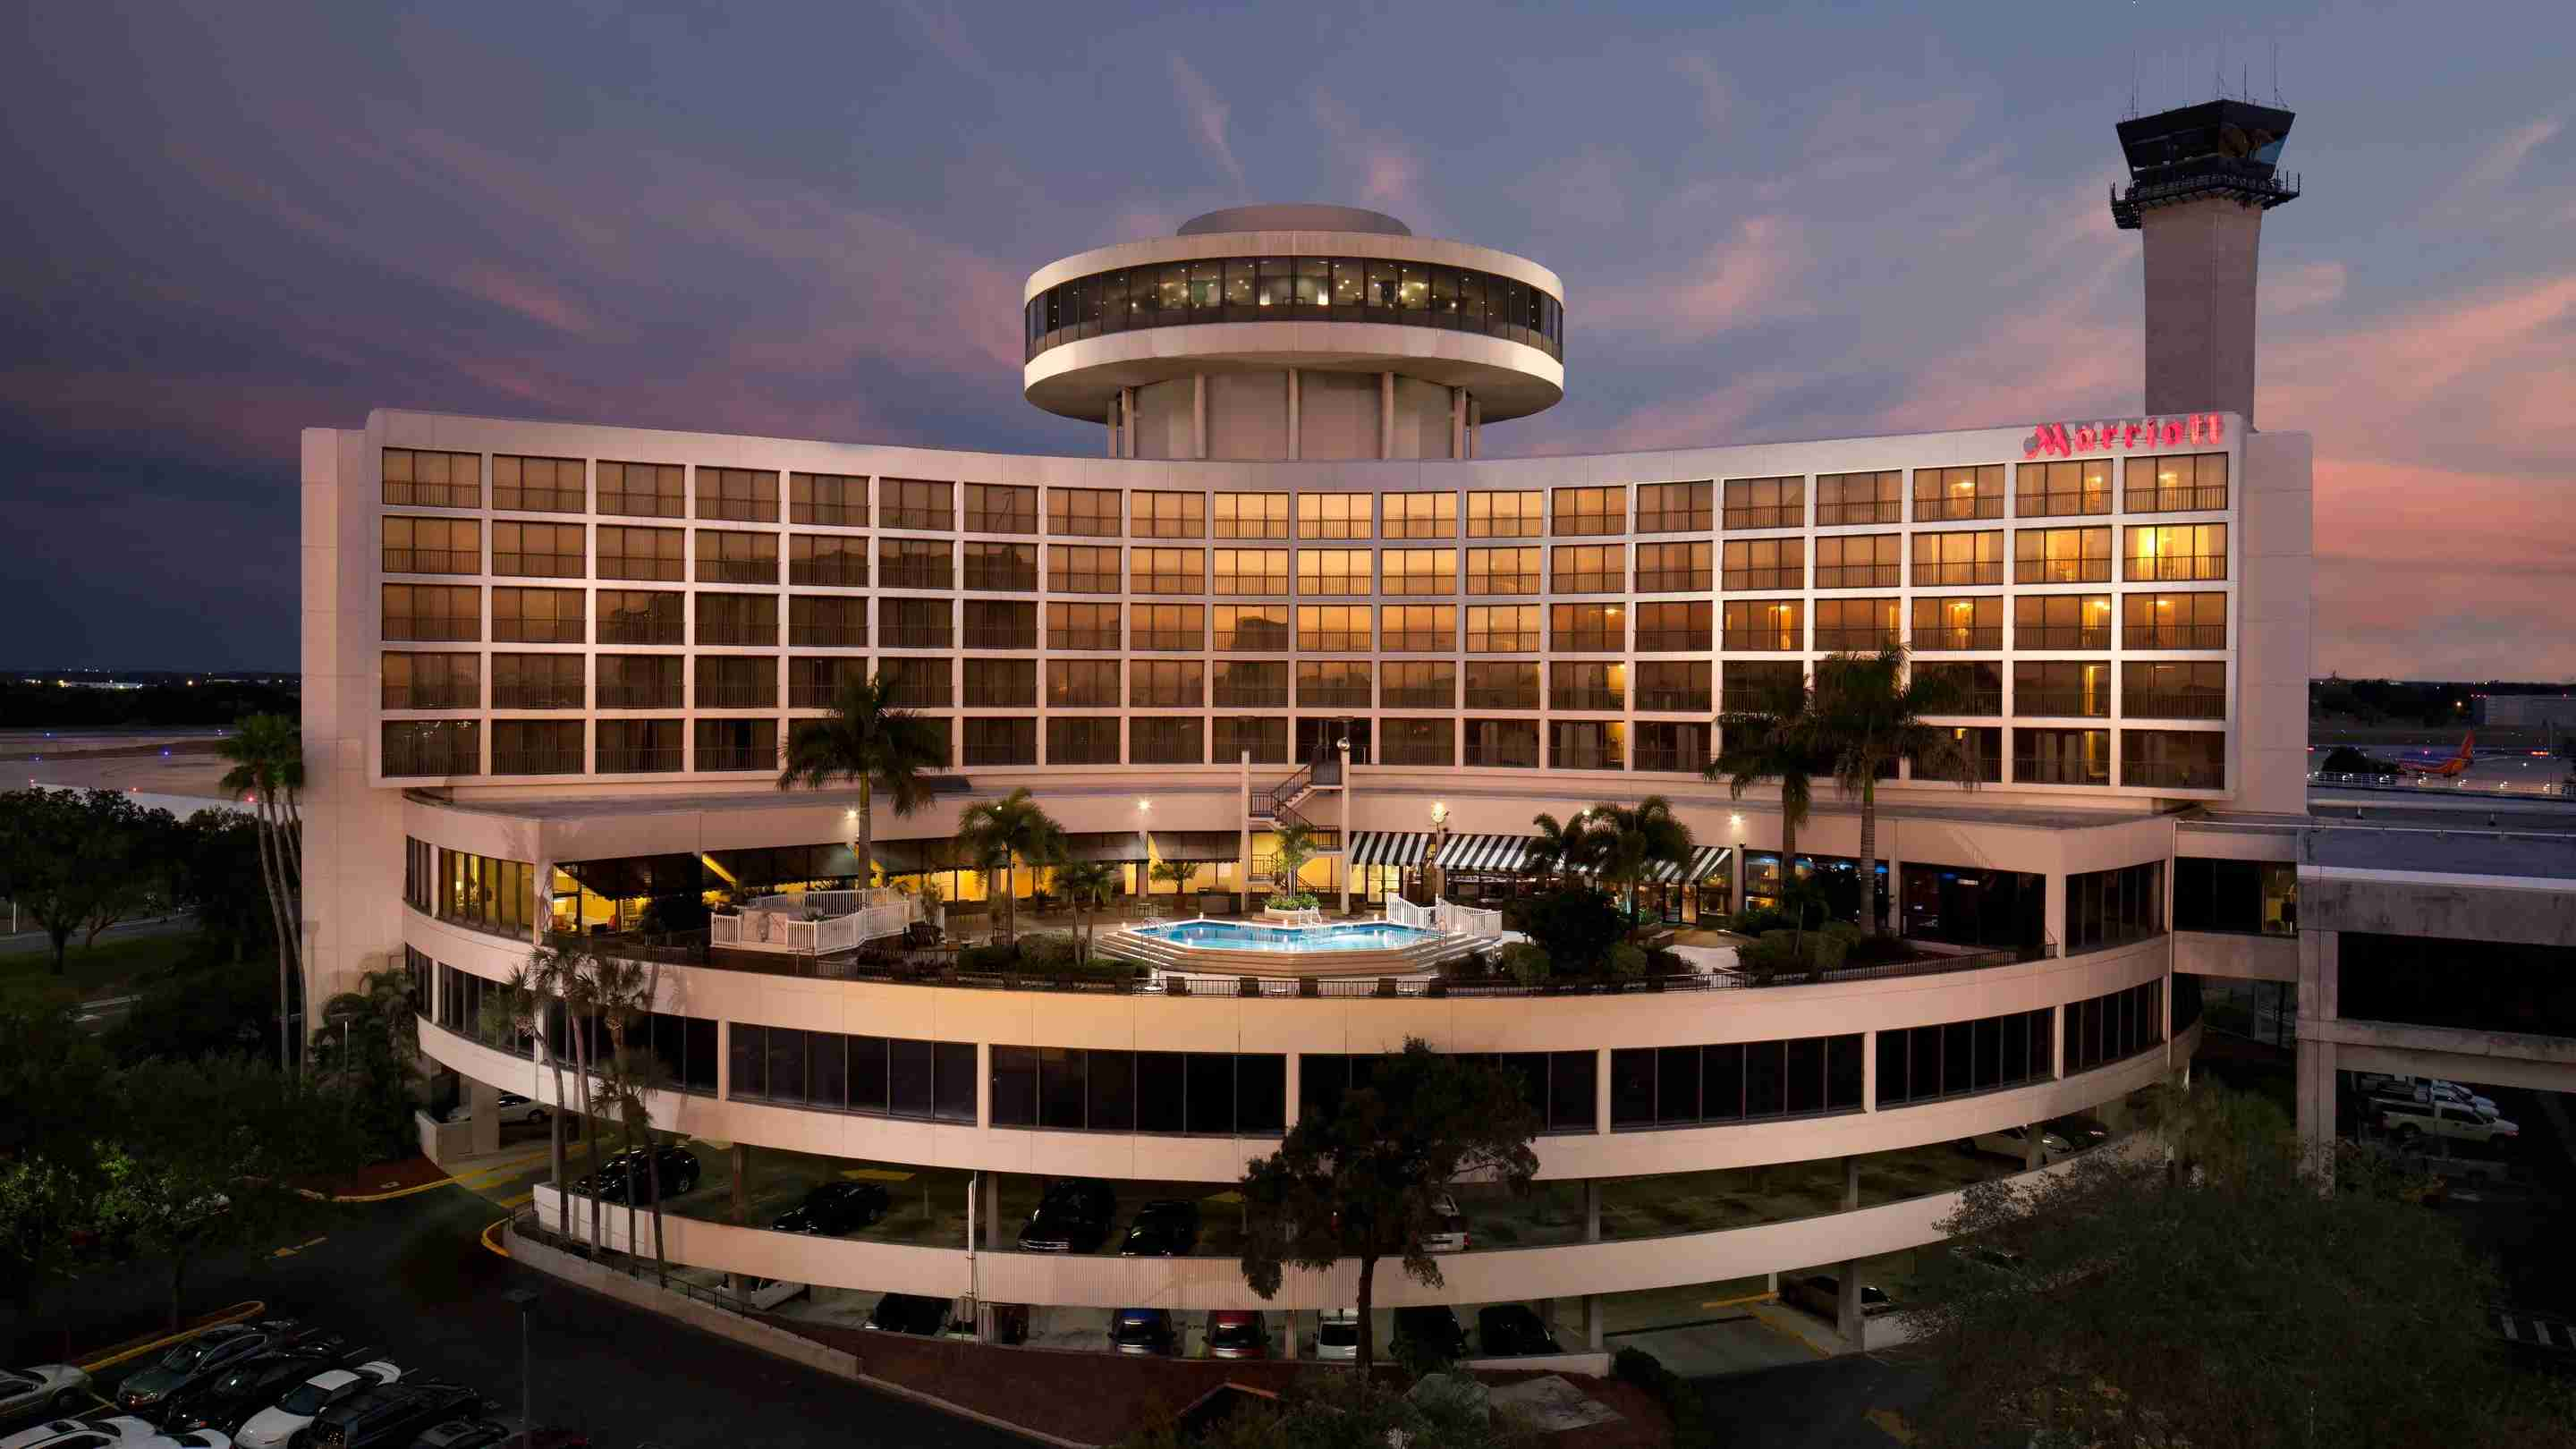 Image courtesy of the Tampa Marriott Airport Hotel